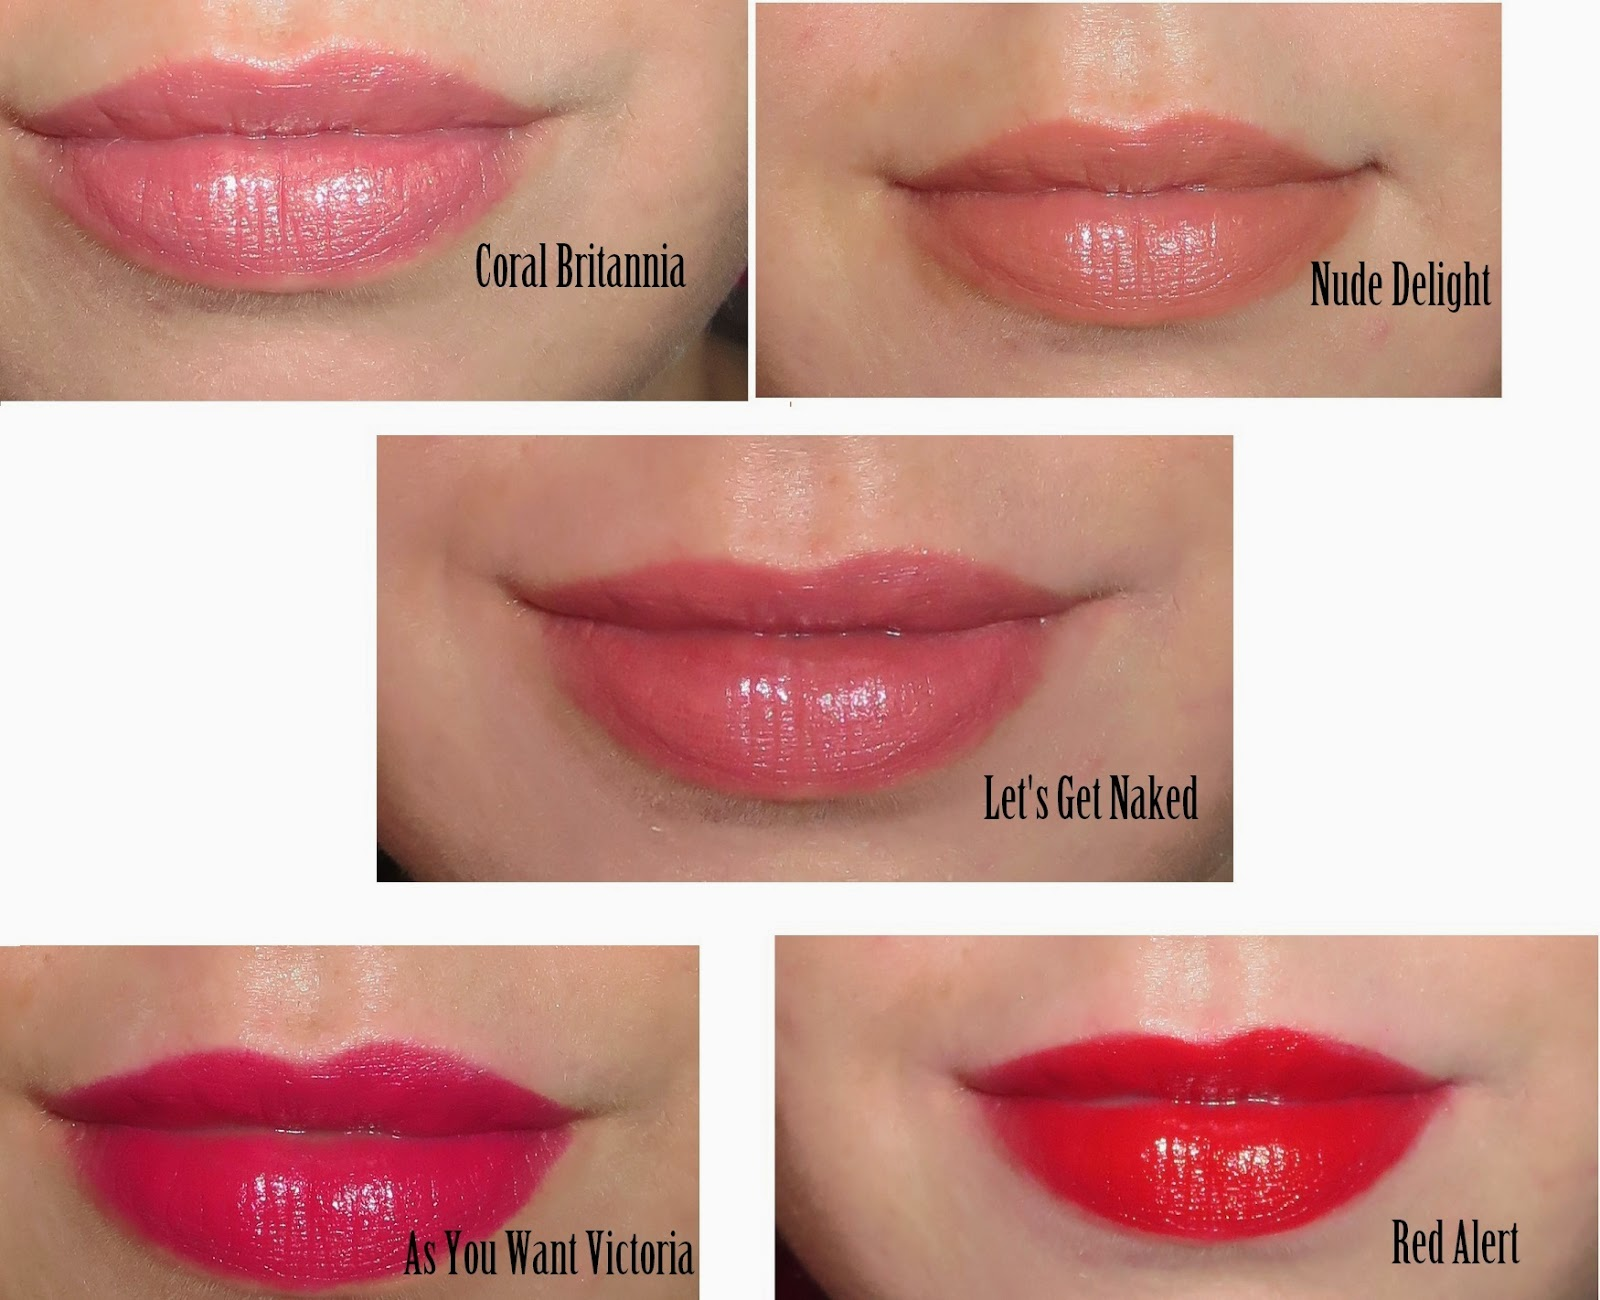 a picture of Rimmel Moisture Renew Lipsticks (lip swatch) ; Red Alert, As You Want Victoria, Let's Get Naked, Nude Delight, Coral Britannia